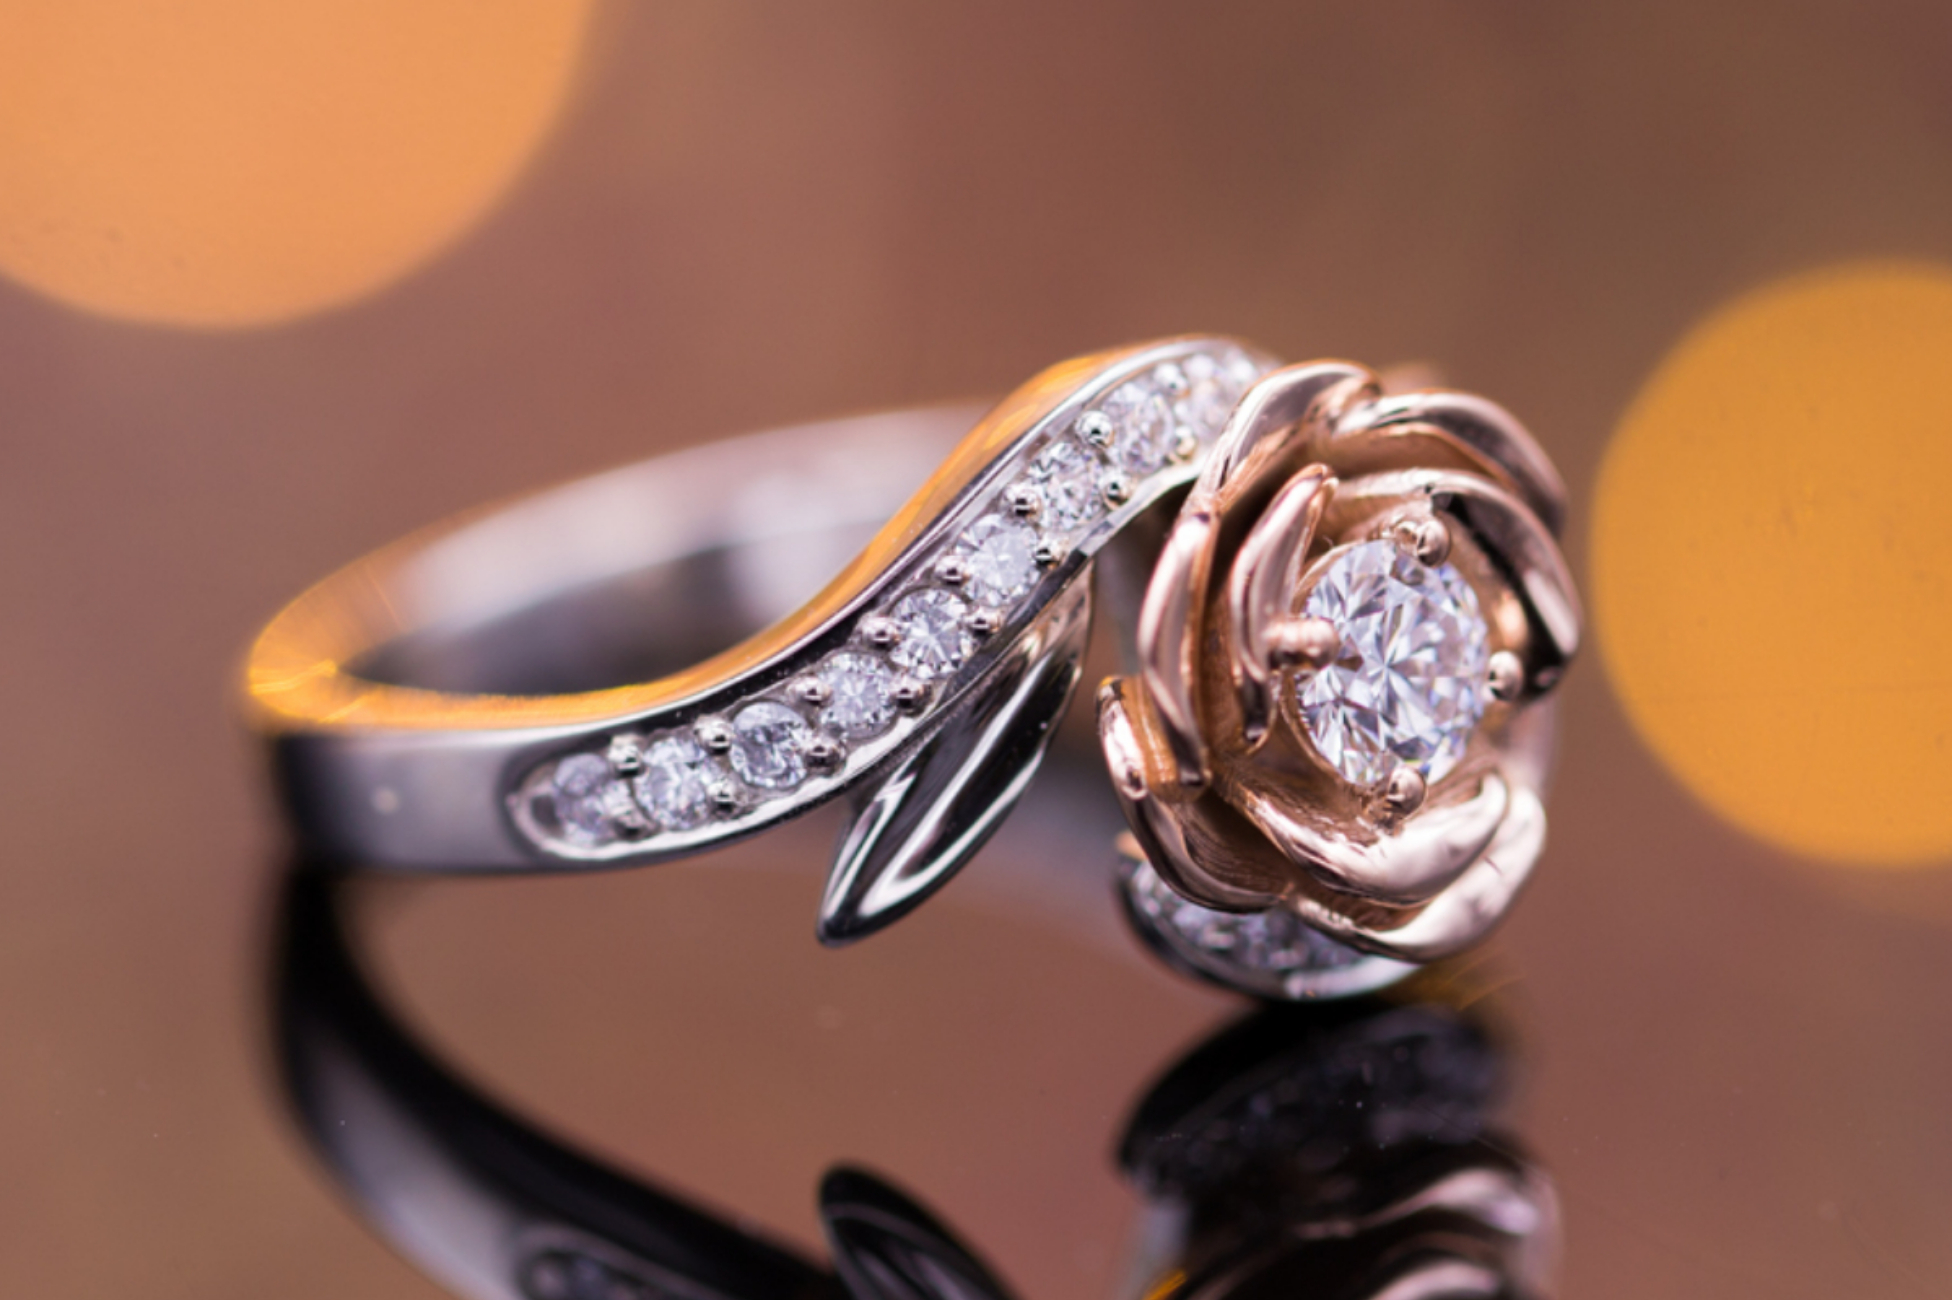 Rose engagement ring with mixes white and rose gold